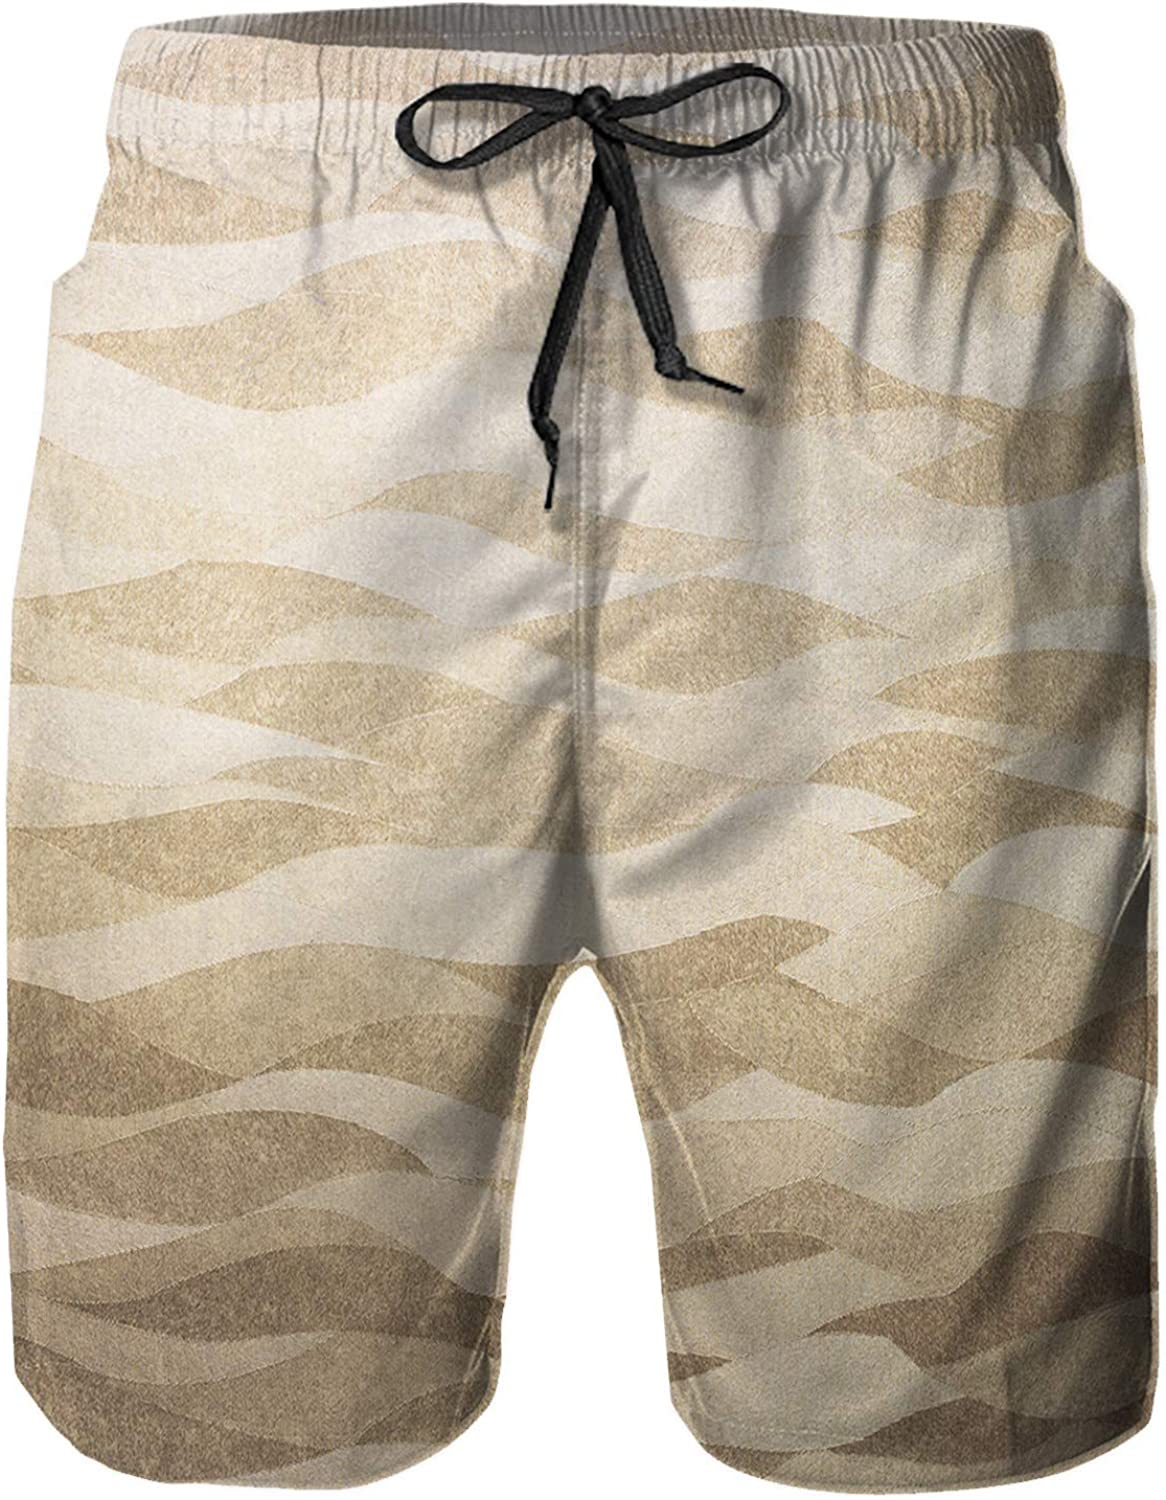 Amextrian Mens Quick Dry Swim Trunks with Mesh Lining, Summer Surf Long Beach Pants Board Shorts Bathing Suits